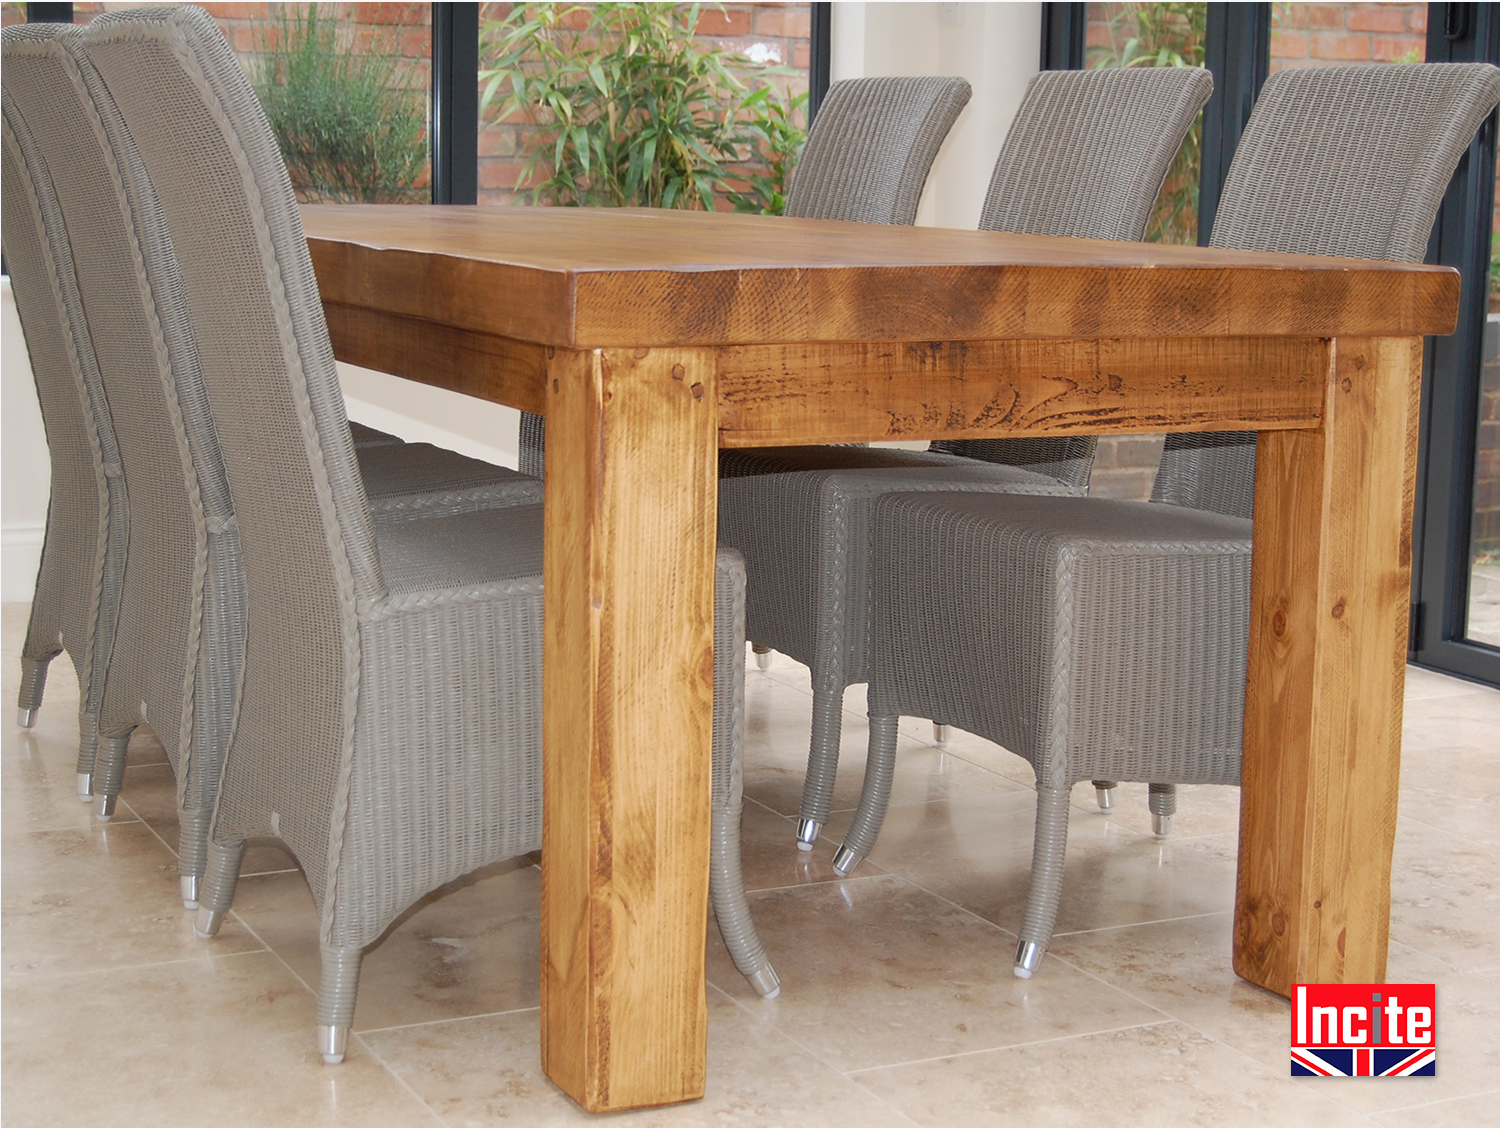 Plank Pine Wood Dining Tables Derbyshire Handmade Incite